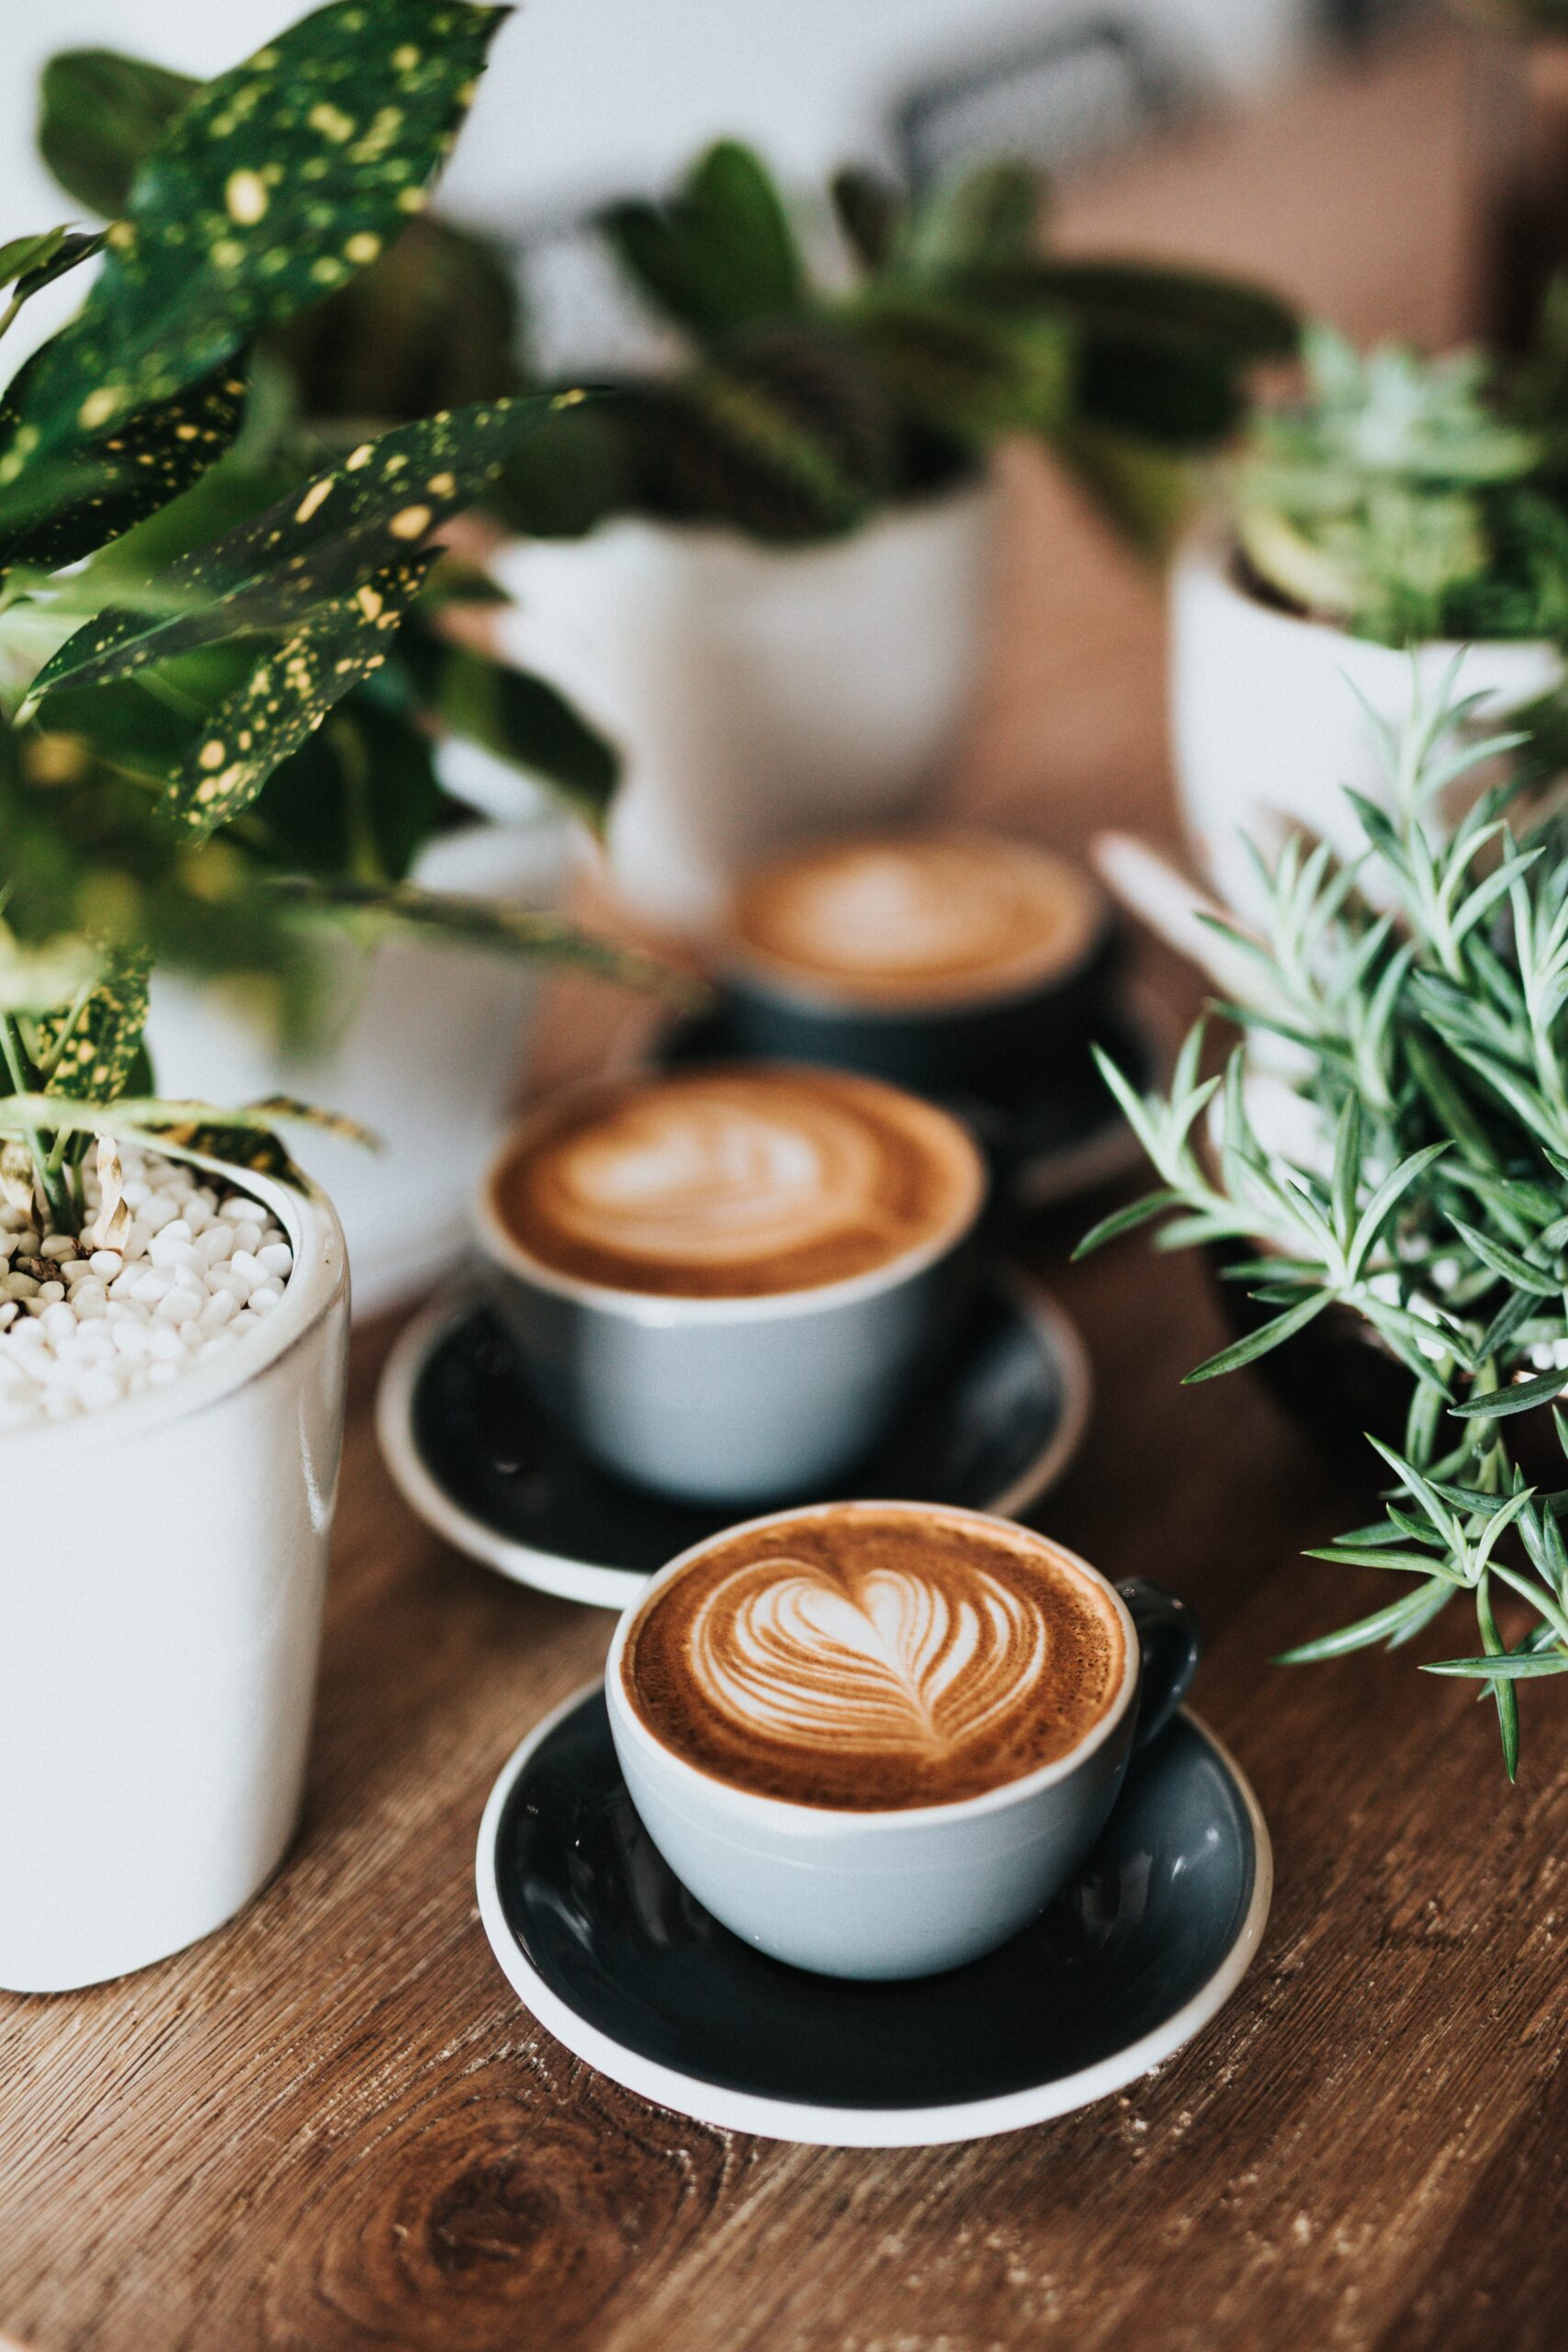 3 Heart Coffees With Plants Nathan Dumlao 426648 Unsplash